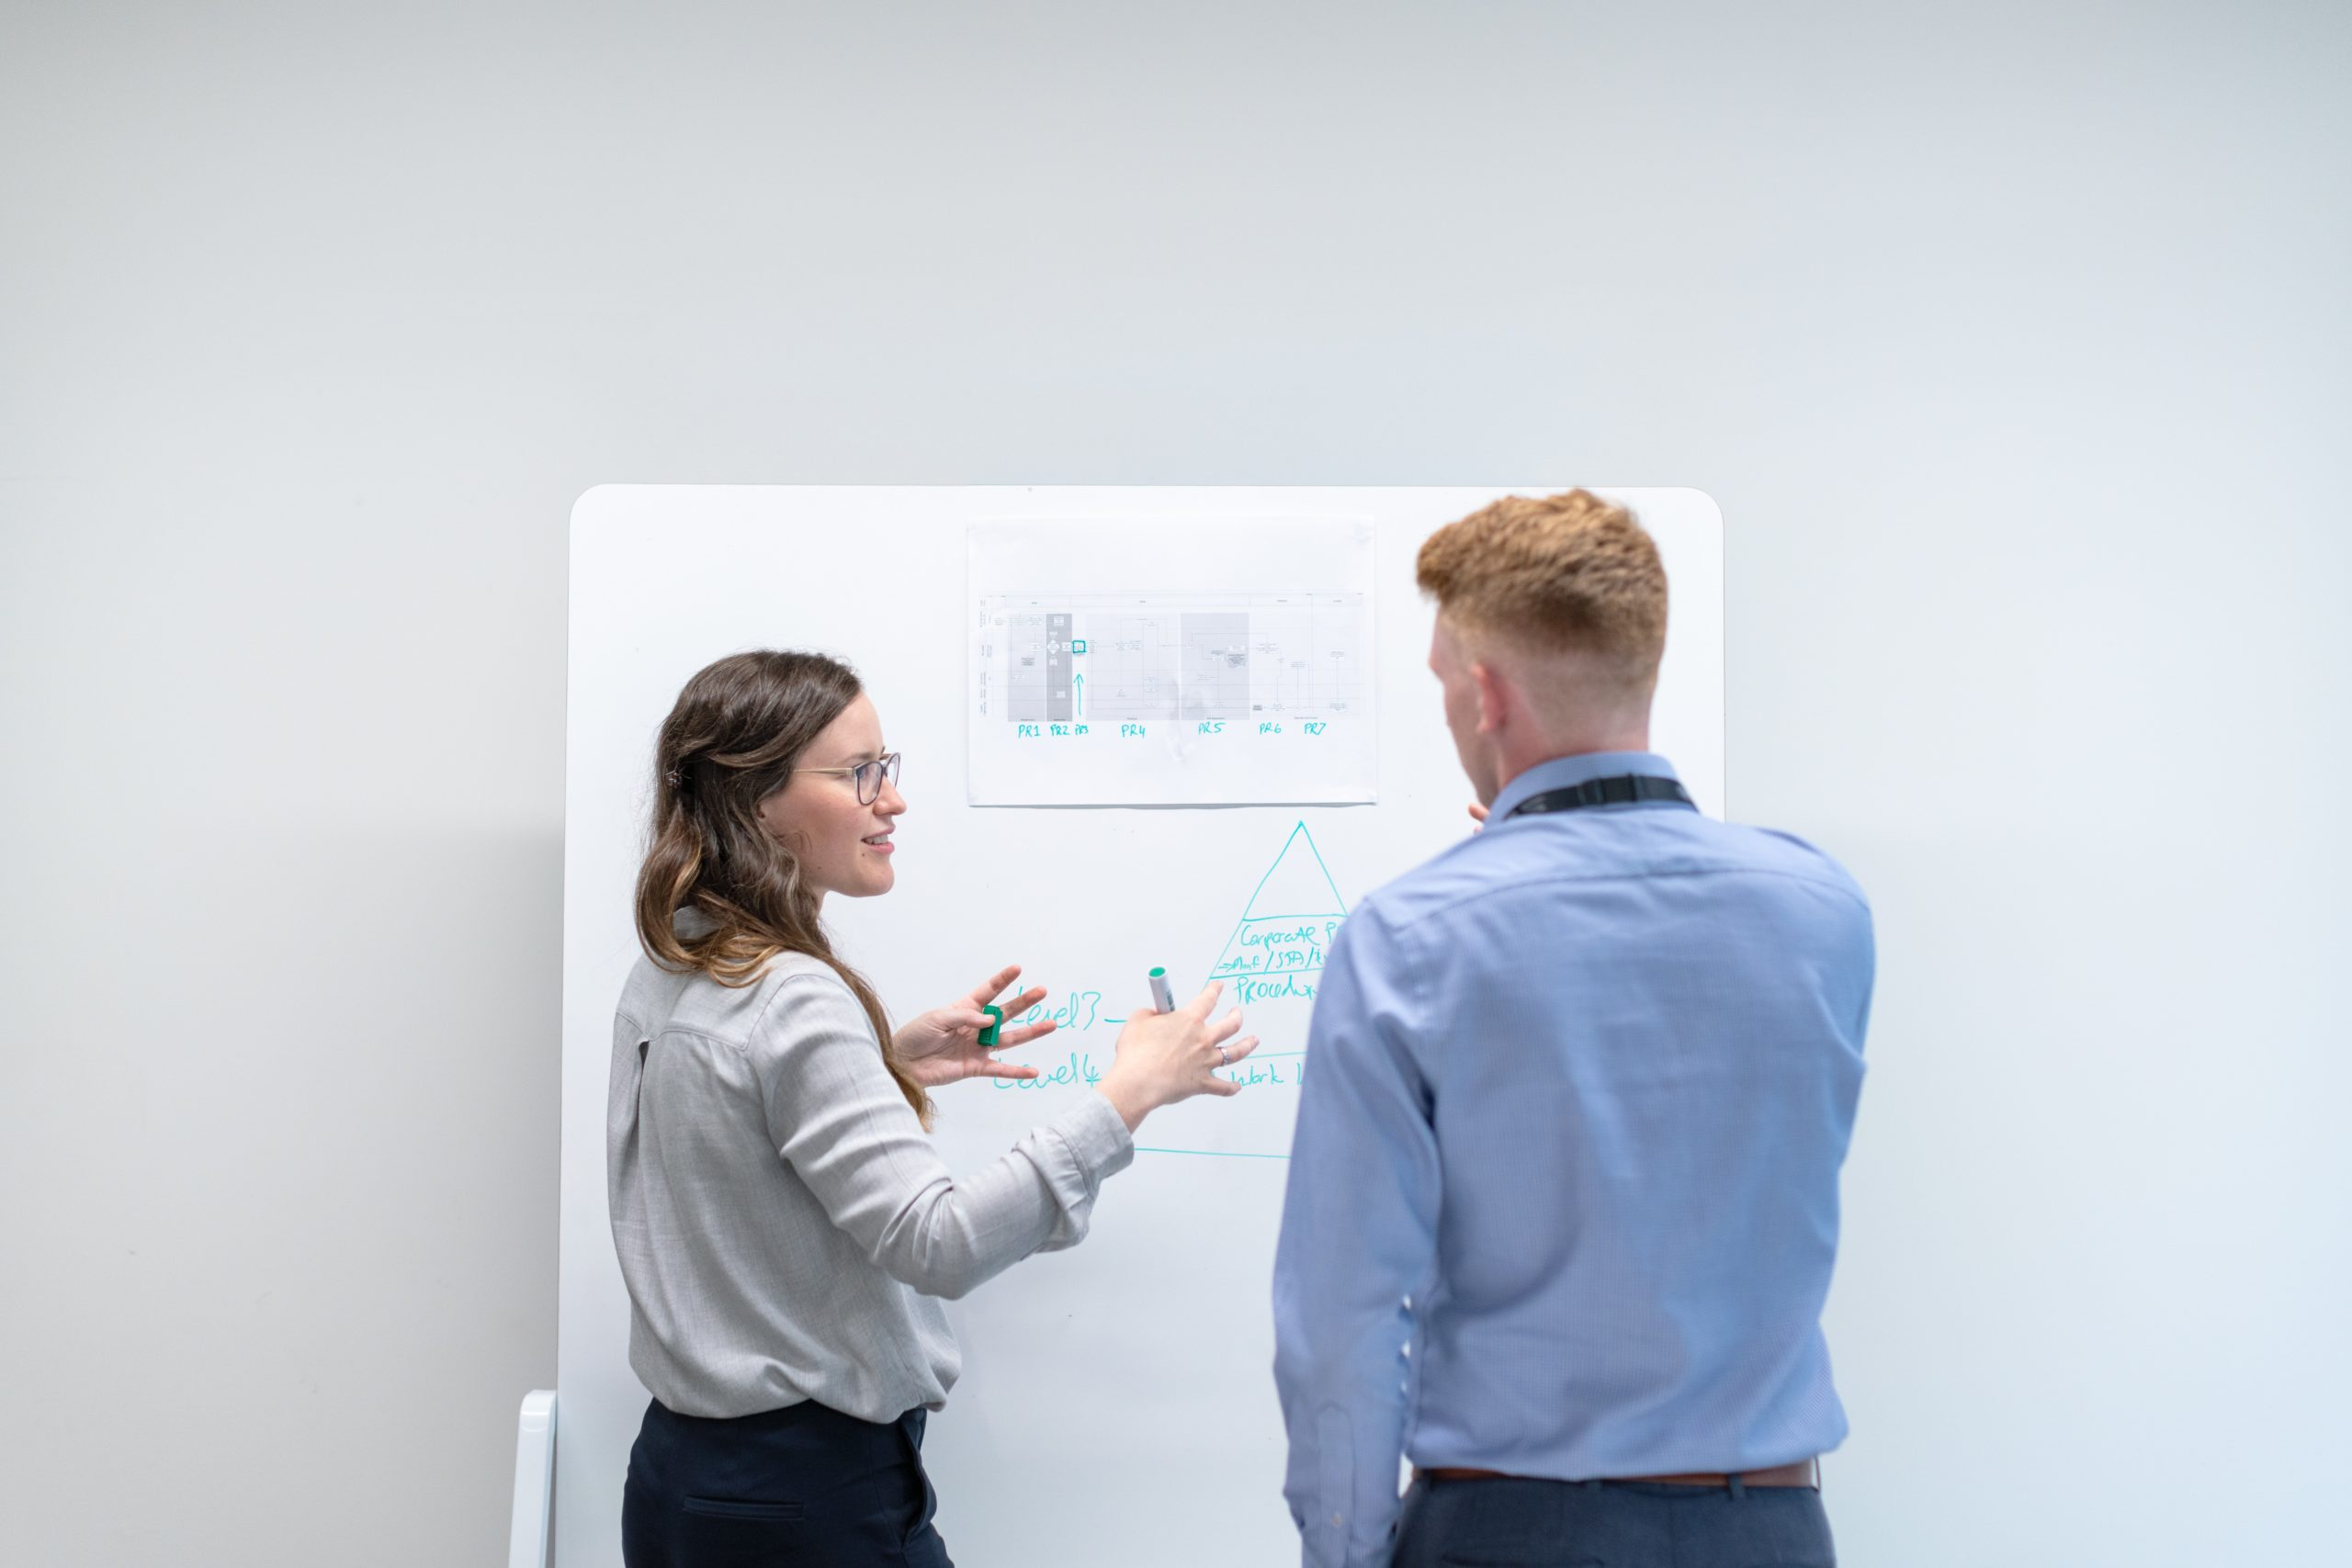 discussion between two people in front of a whiteboard